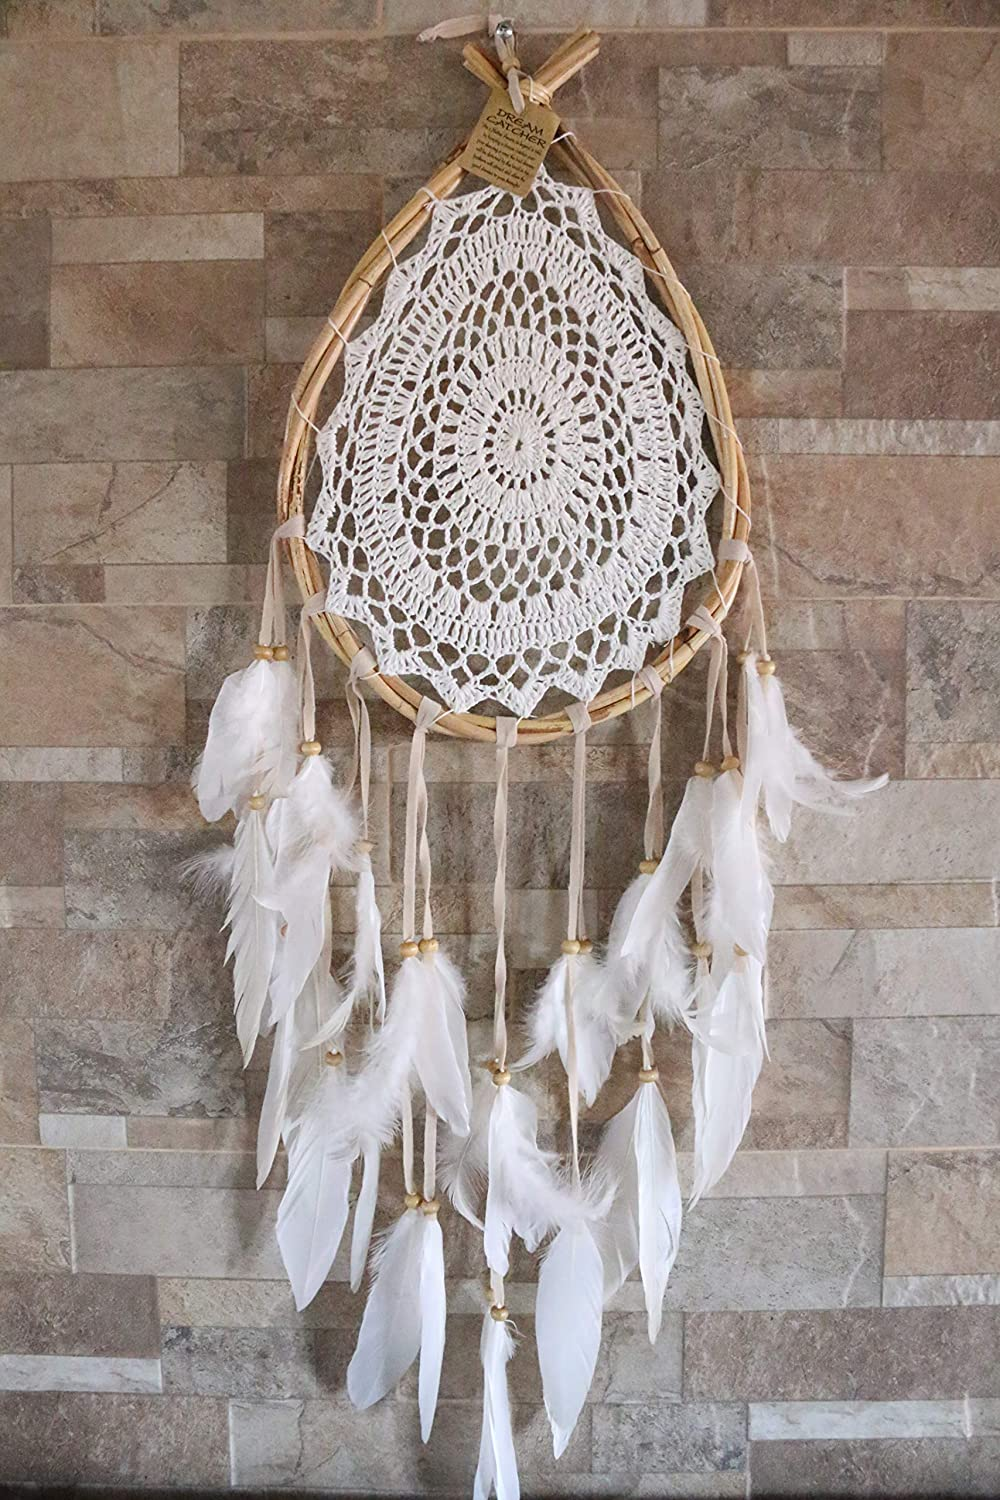 Dream Catcher for Bedroom Decoration Boho Style Dreamcatcher Hand Crafted Bohemian Decor Item Teardrop Shape Weddings Crochet Hippie Gypsy Style Wall Hanging Hand Made Ornament 9.5